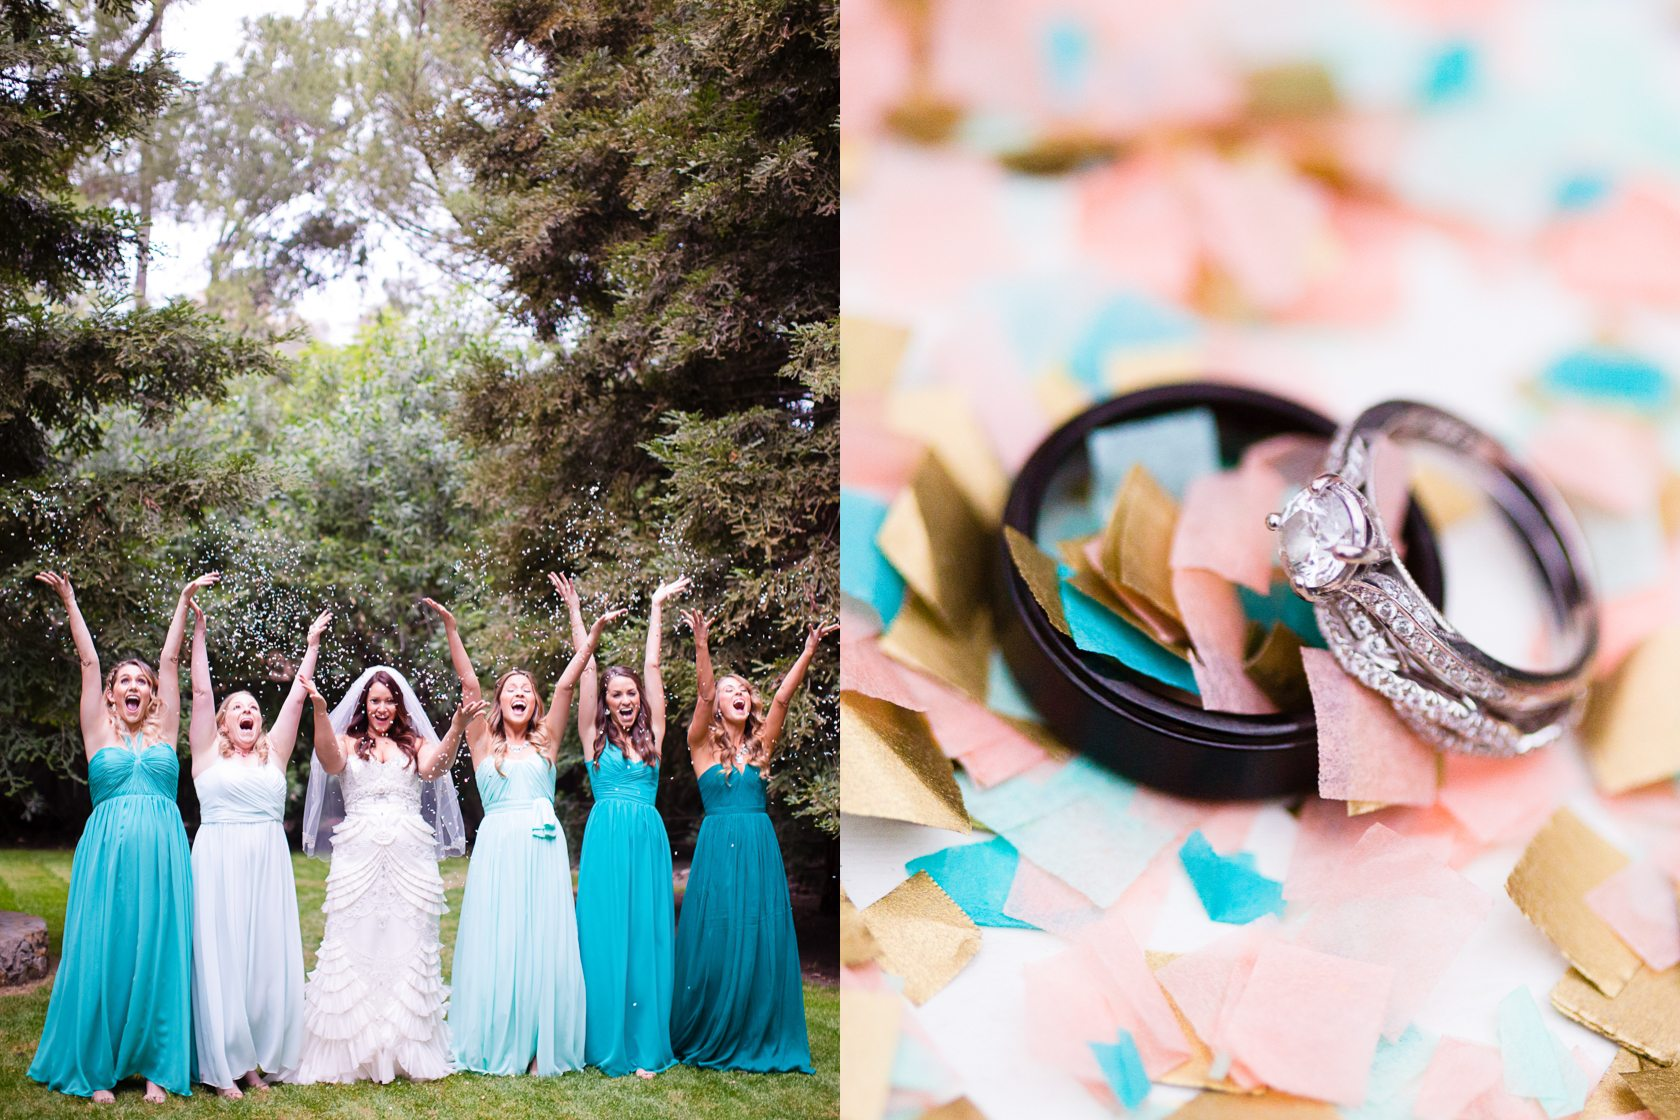 The_Printed_Palette_Wedding_at_Calamigos_Ranch_013.jpg